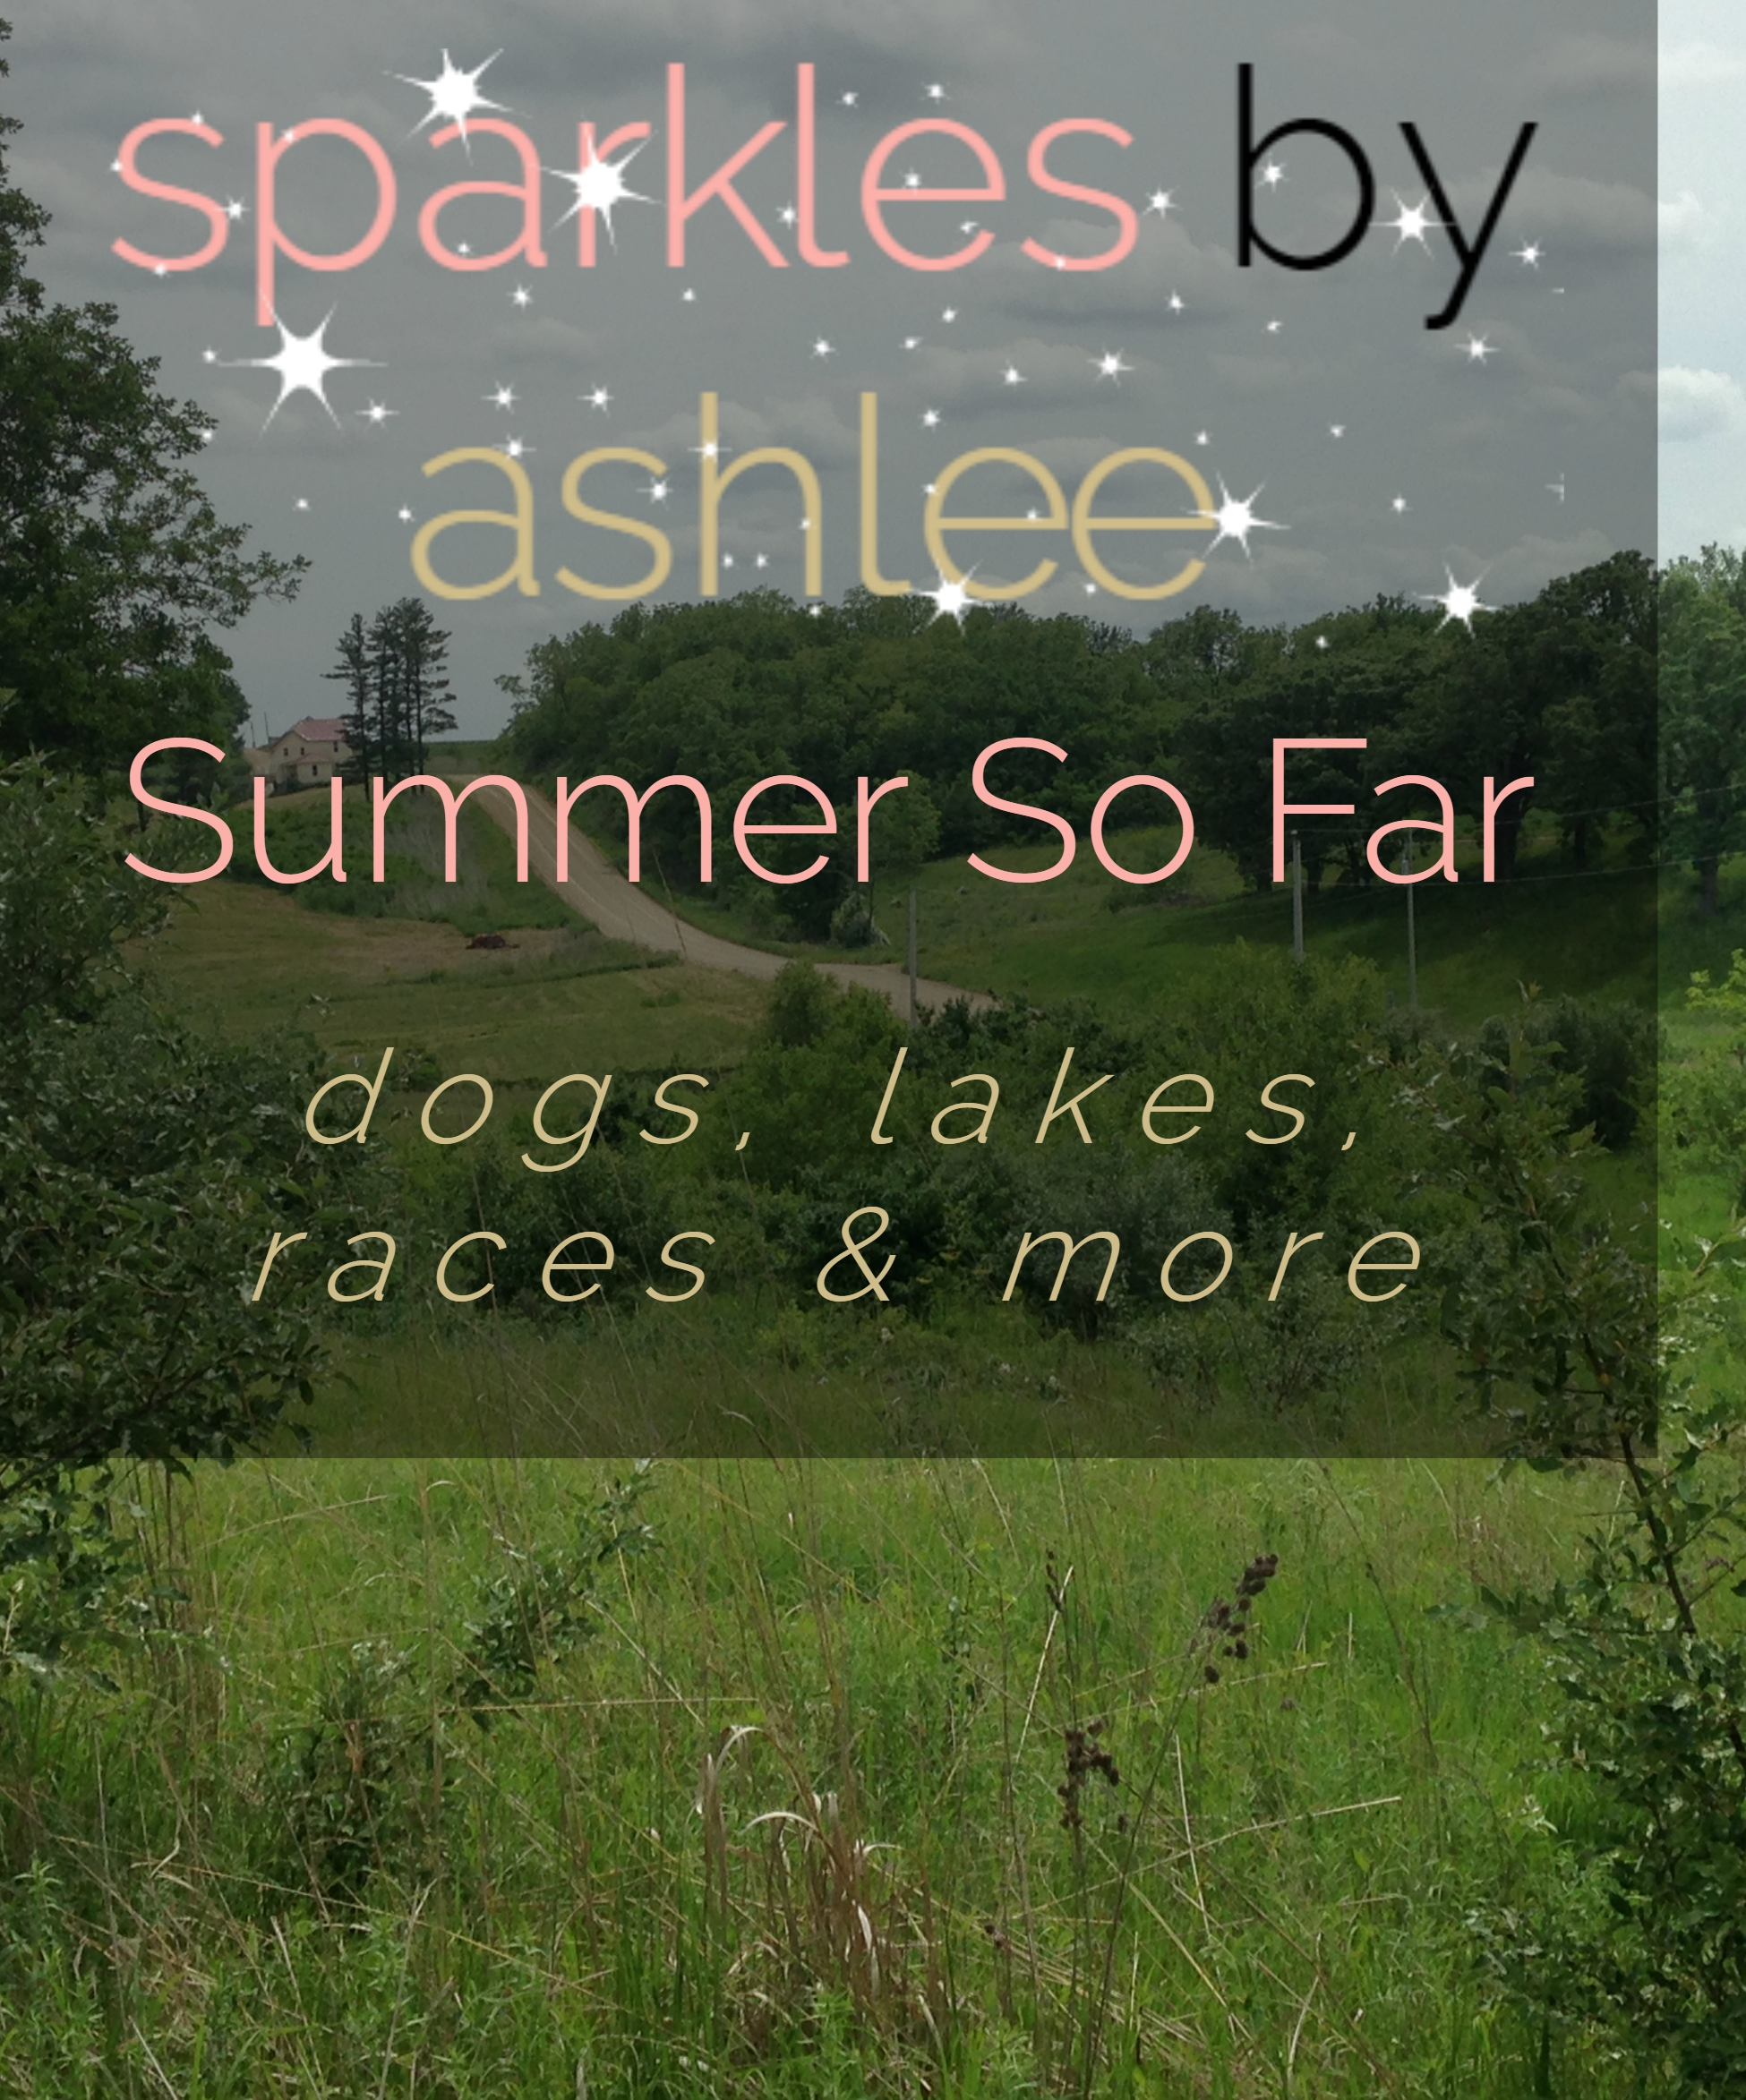 Lets-Catch-Up-Summer-So-Far-Sparkles-by-Ashlee.jpg